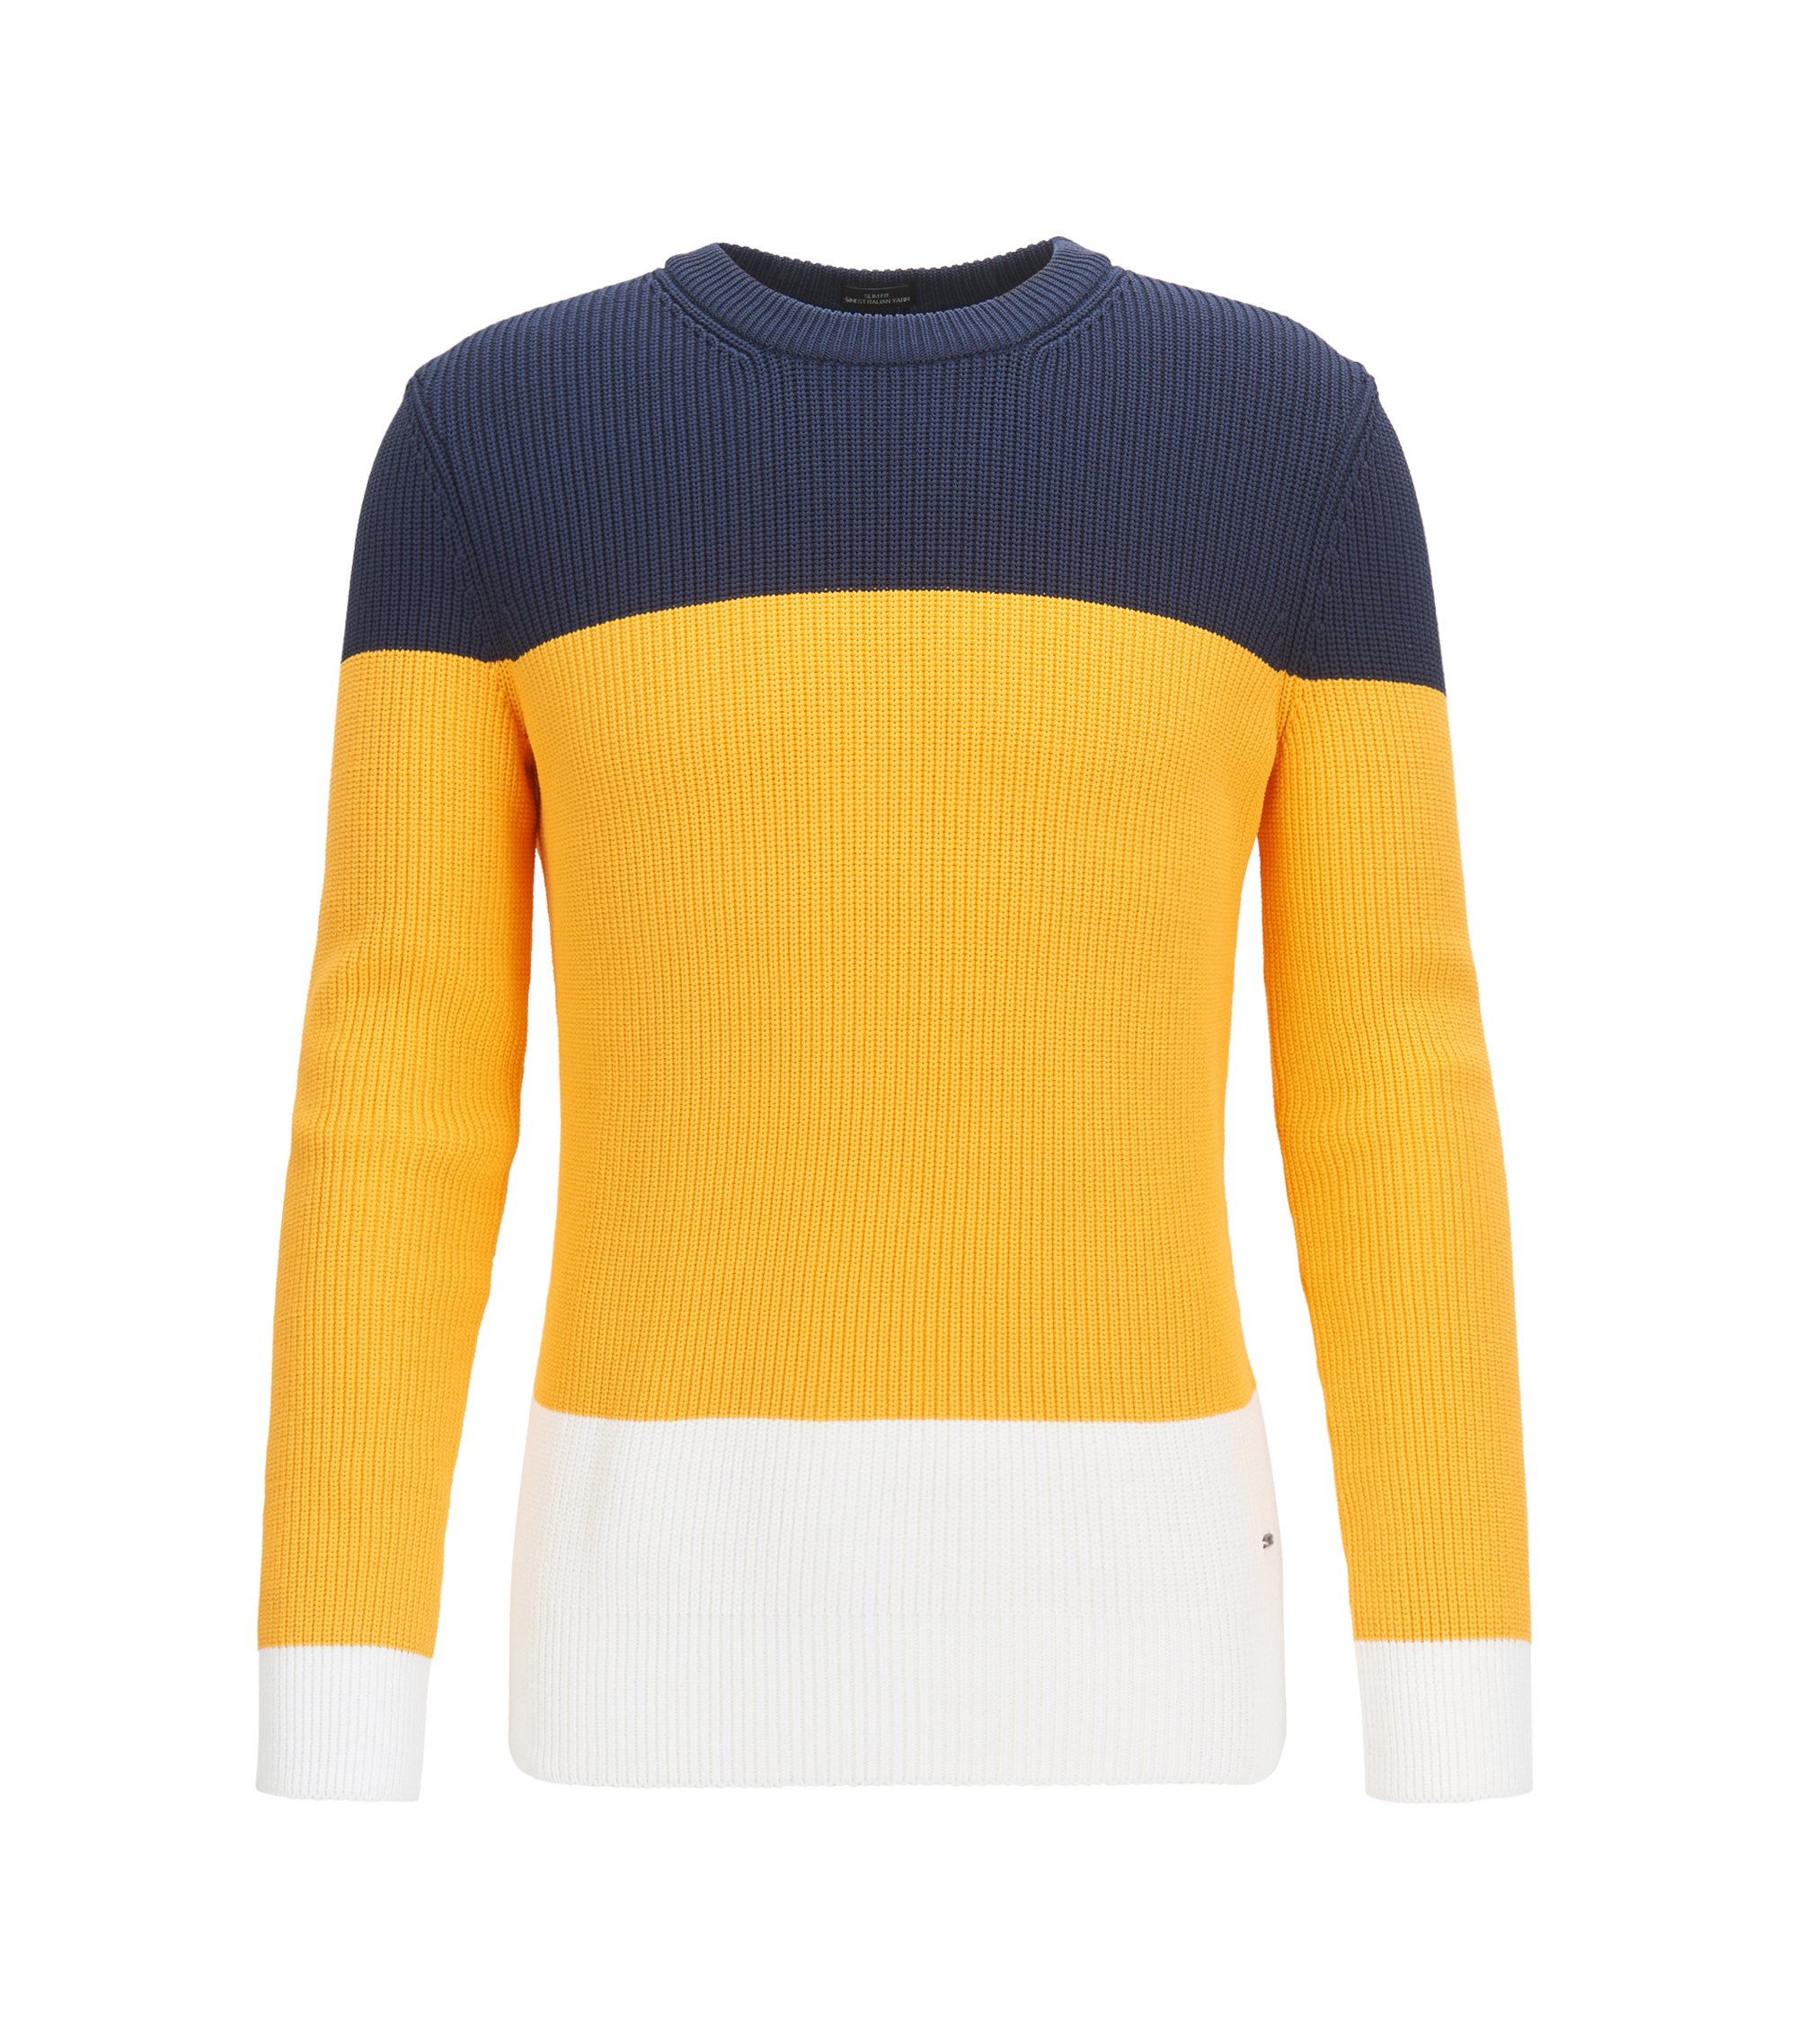 Gerippter Pullover aus Material-Mix mit Colour-Block-Design, Gold